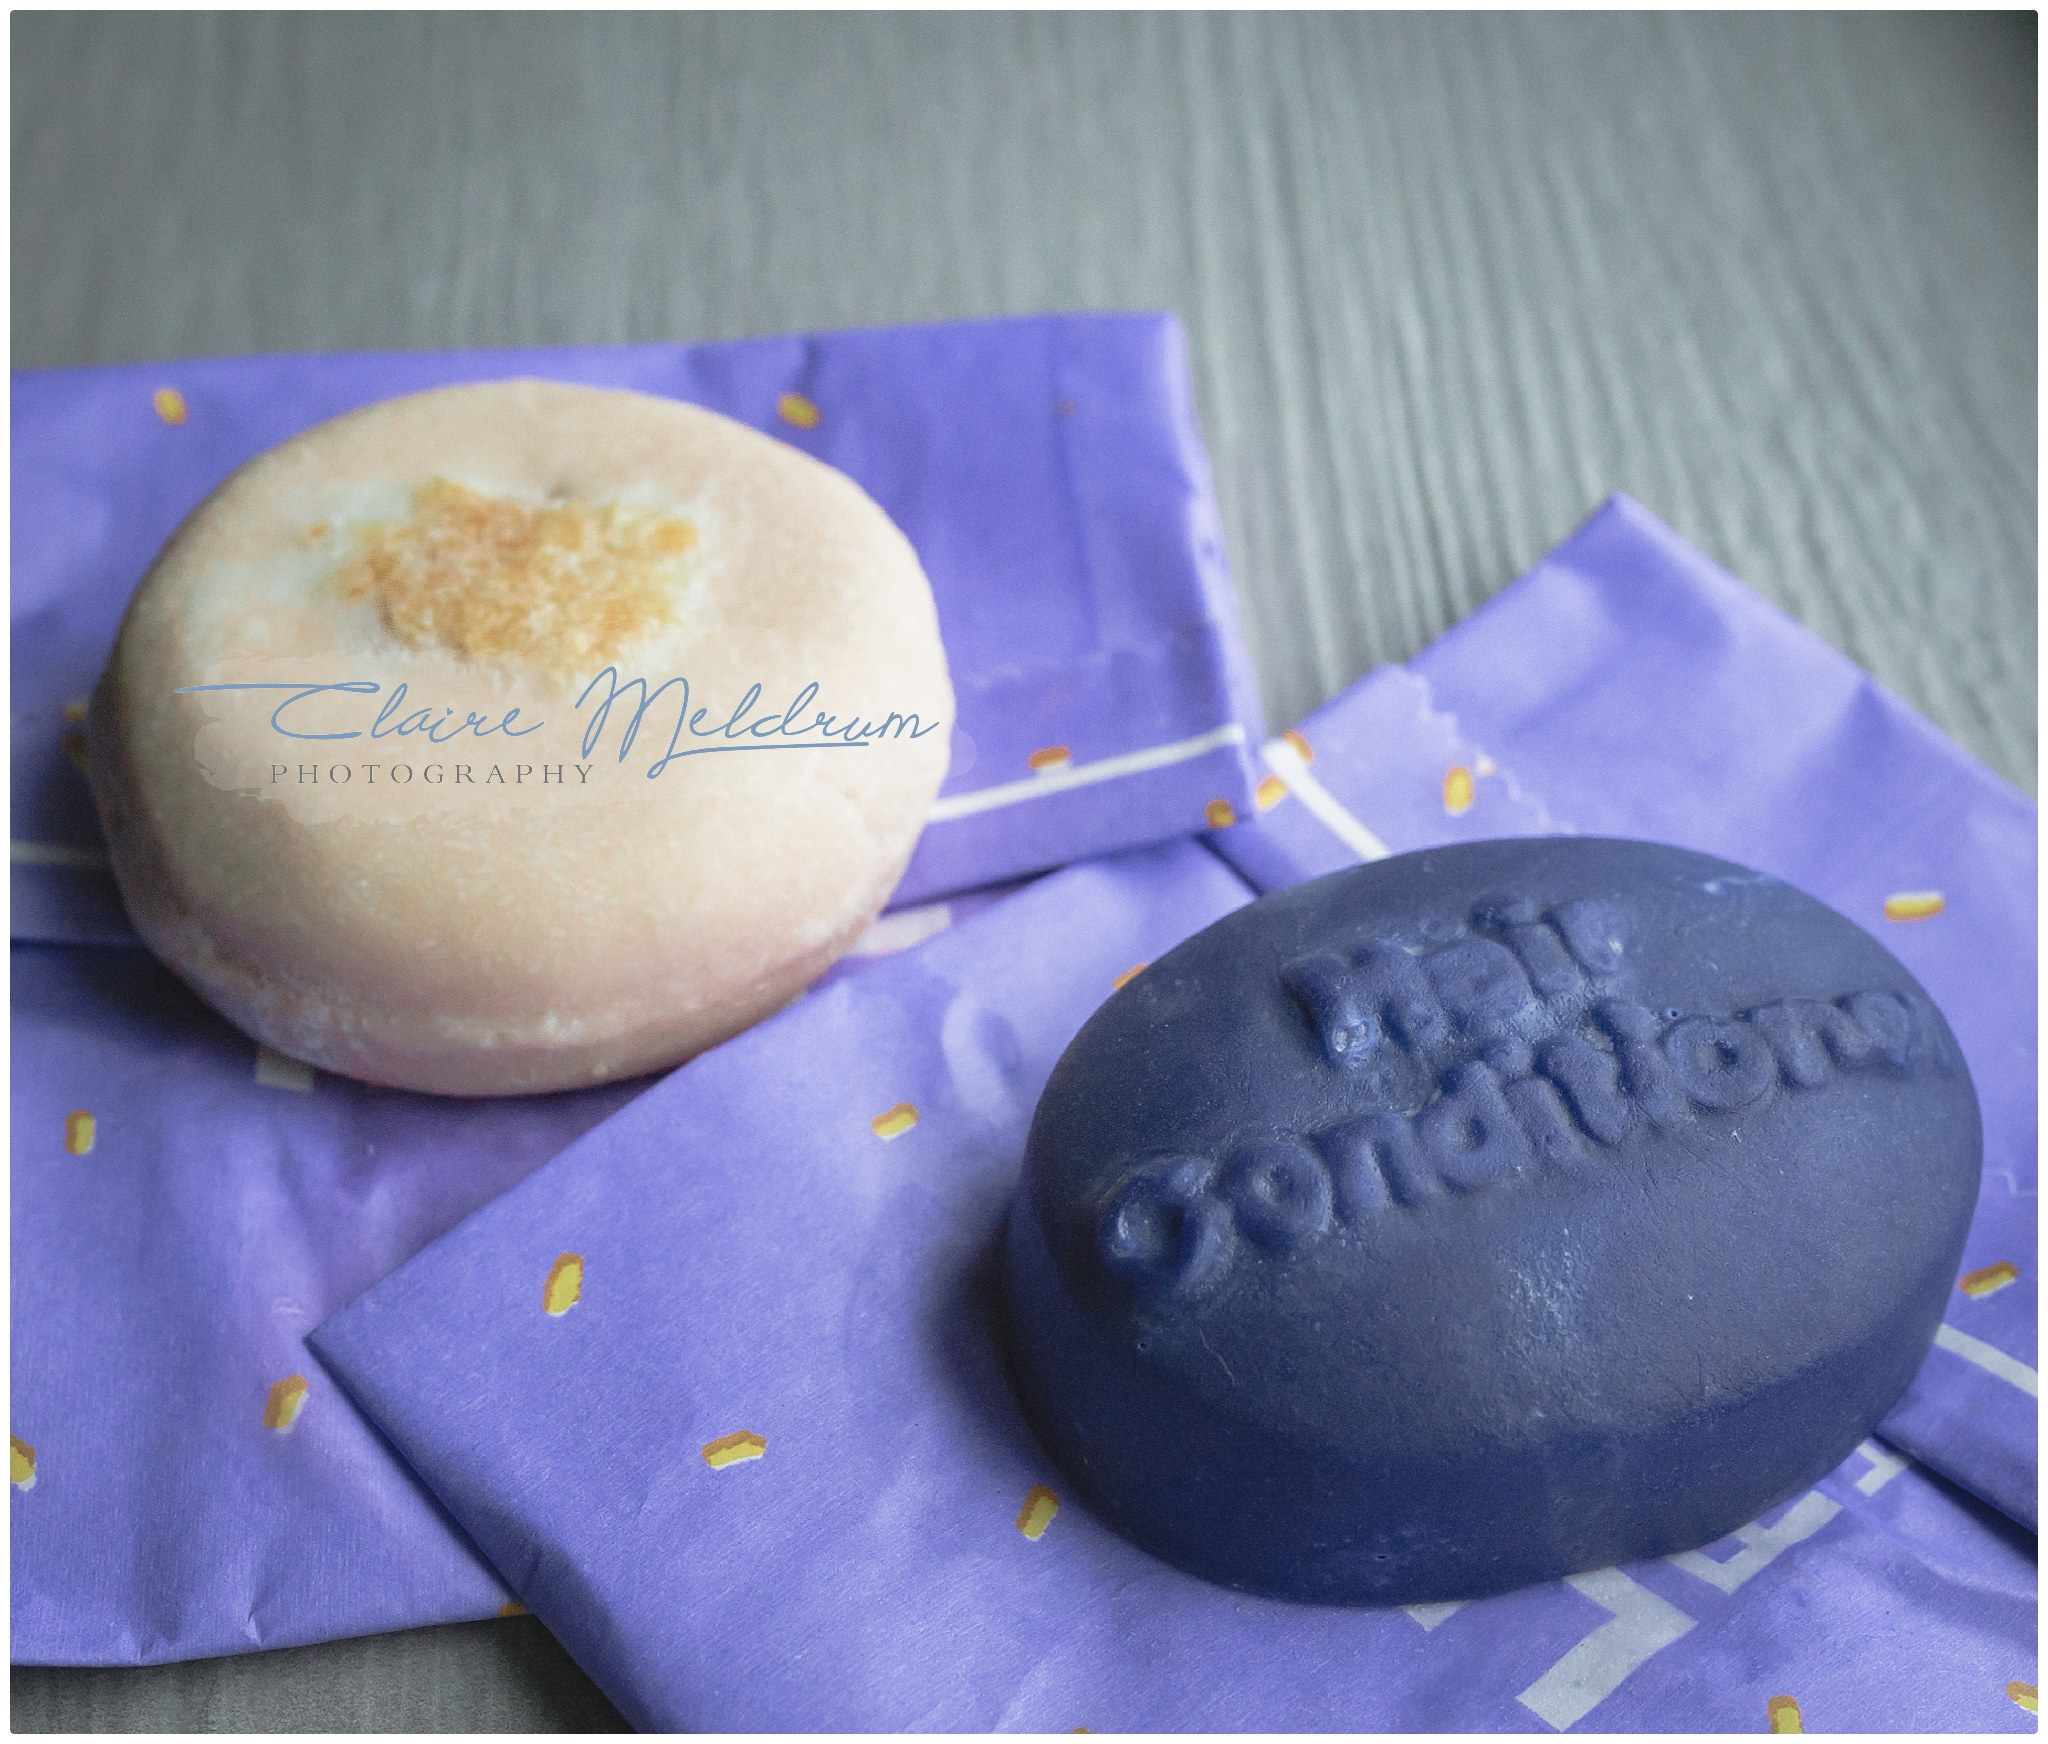 Lush shampoo bar review. Claire Meldrum Photography